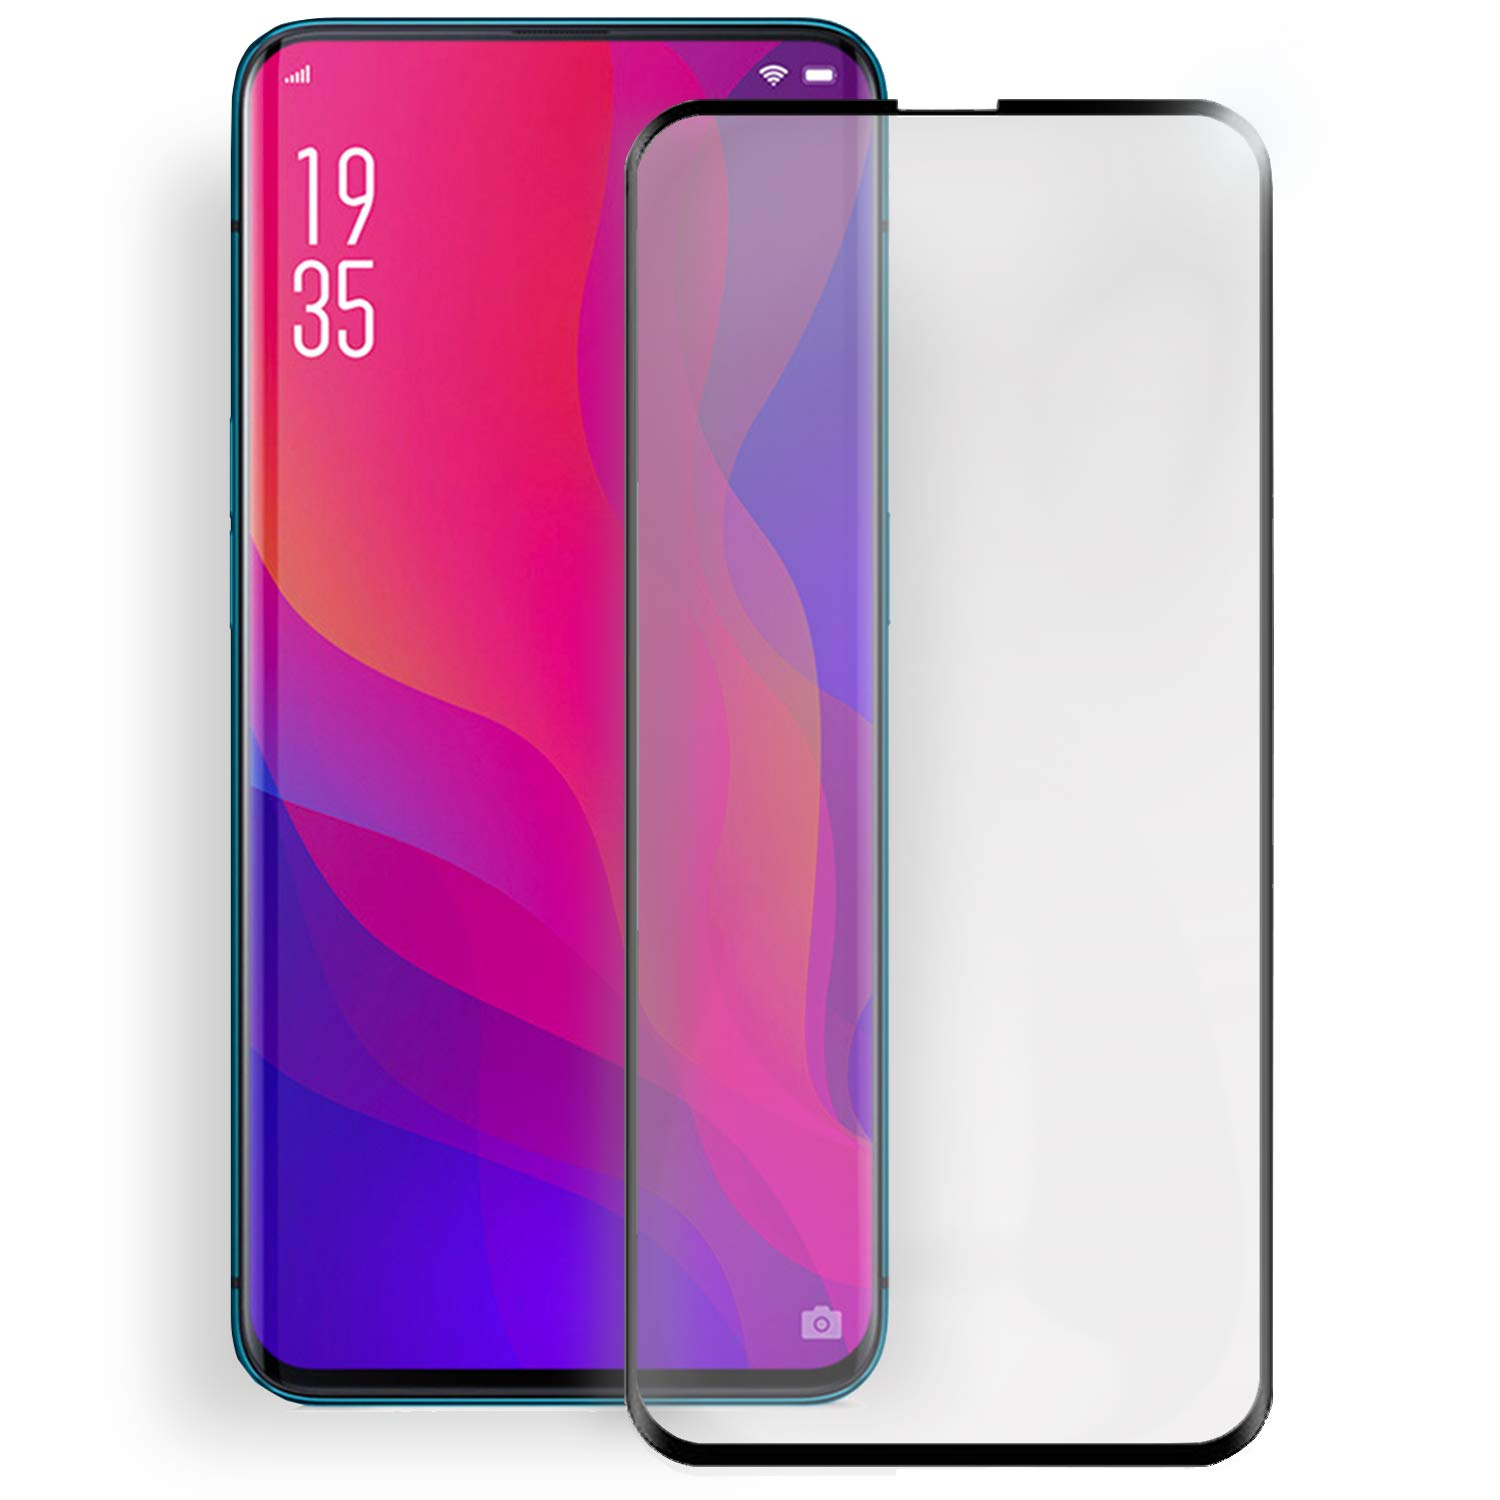 Olixar for Oppo Find X Screen Protector Full Coverage - Tempered Glass - 9H Rated - Shock Protection - Easy Application, Card and Cleaning Cloth Included - Black